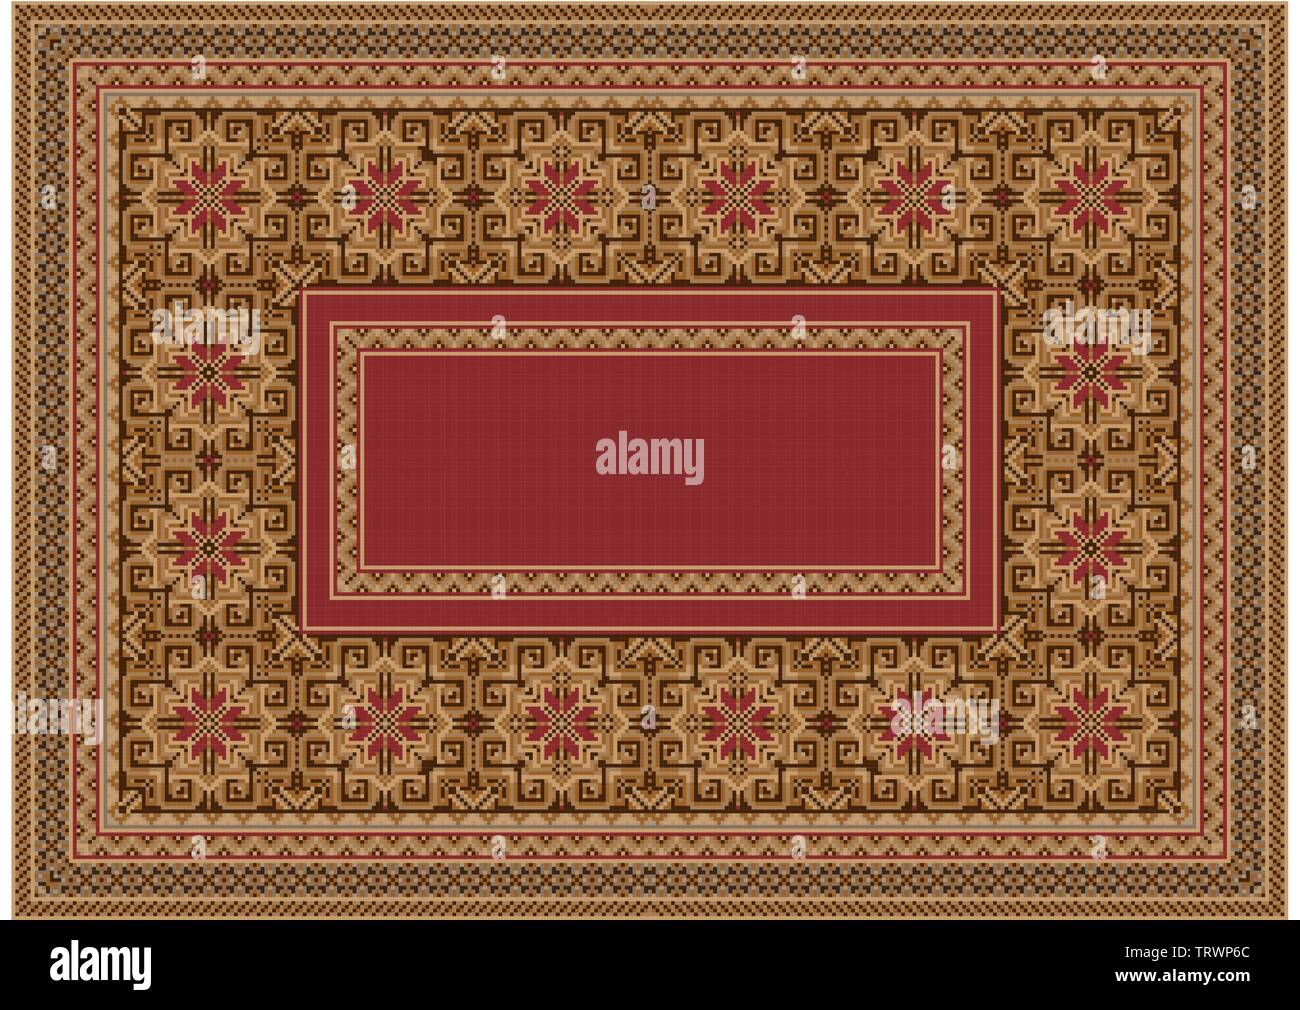 Drawing of a luxurious old oriental carpet with red, beige and brown hues and a patterned border in the middle on a white background - Stock Image